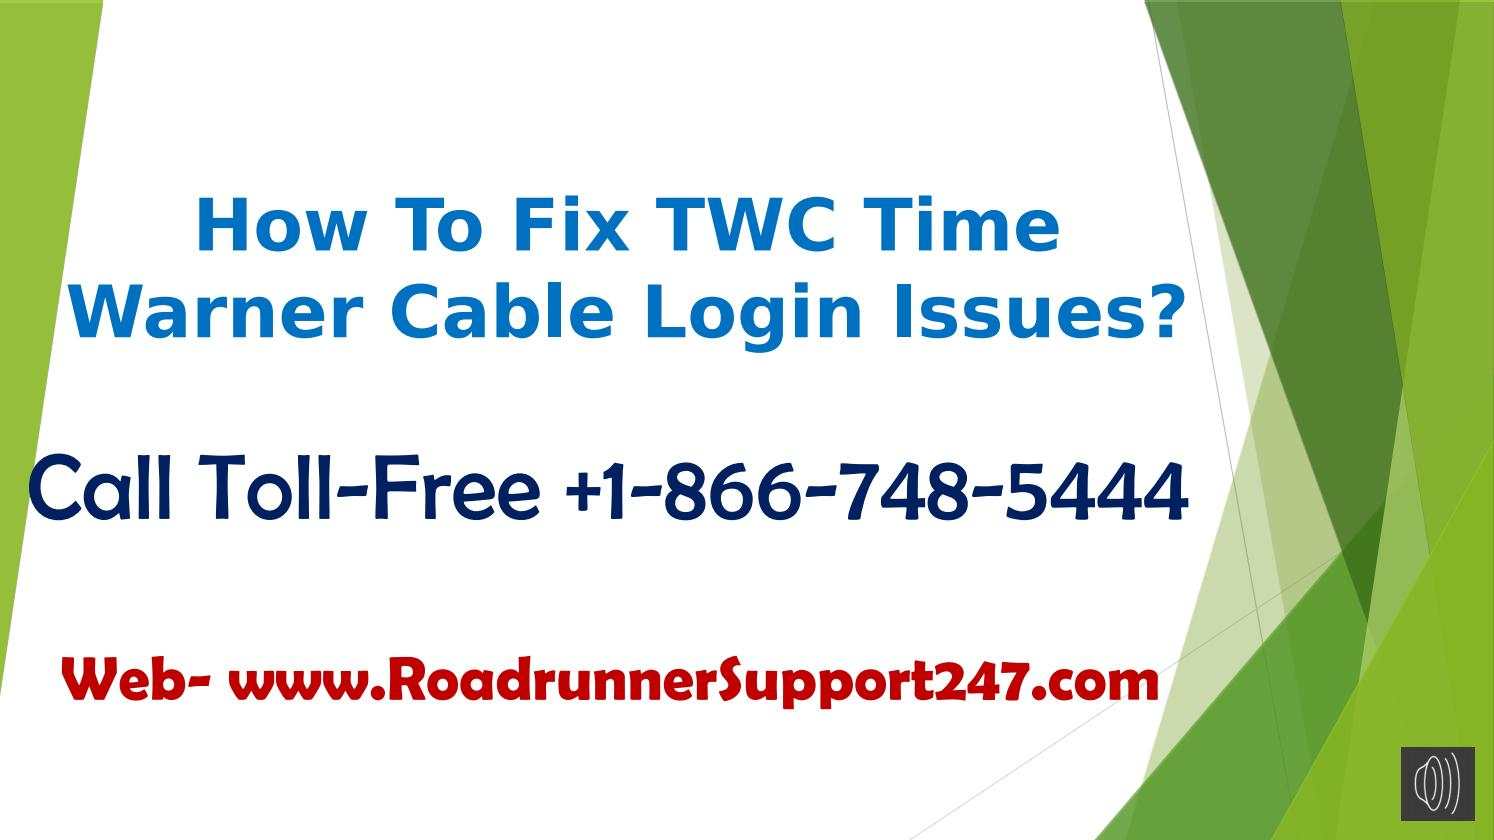 How to Fix TWC Time Warner Cable Login Issues ? Call +1-866